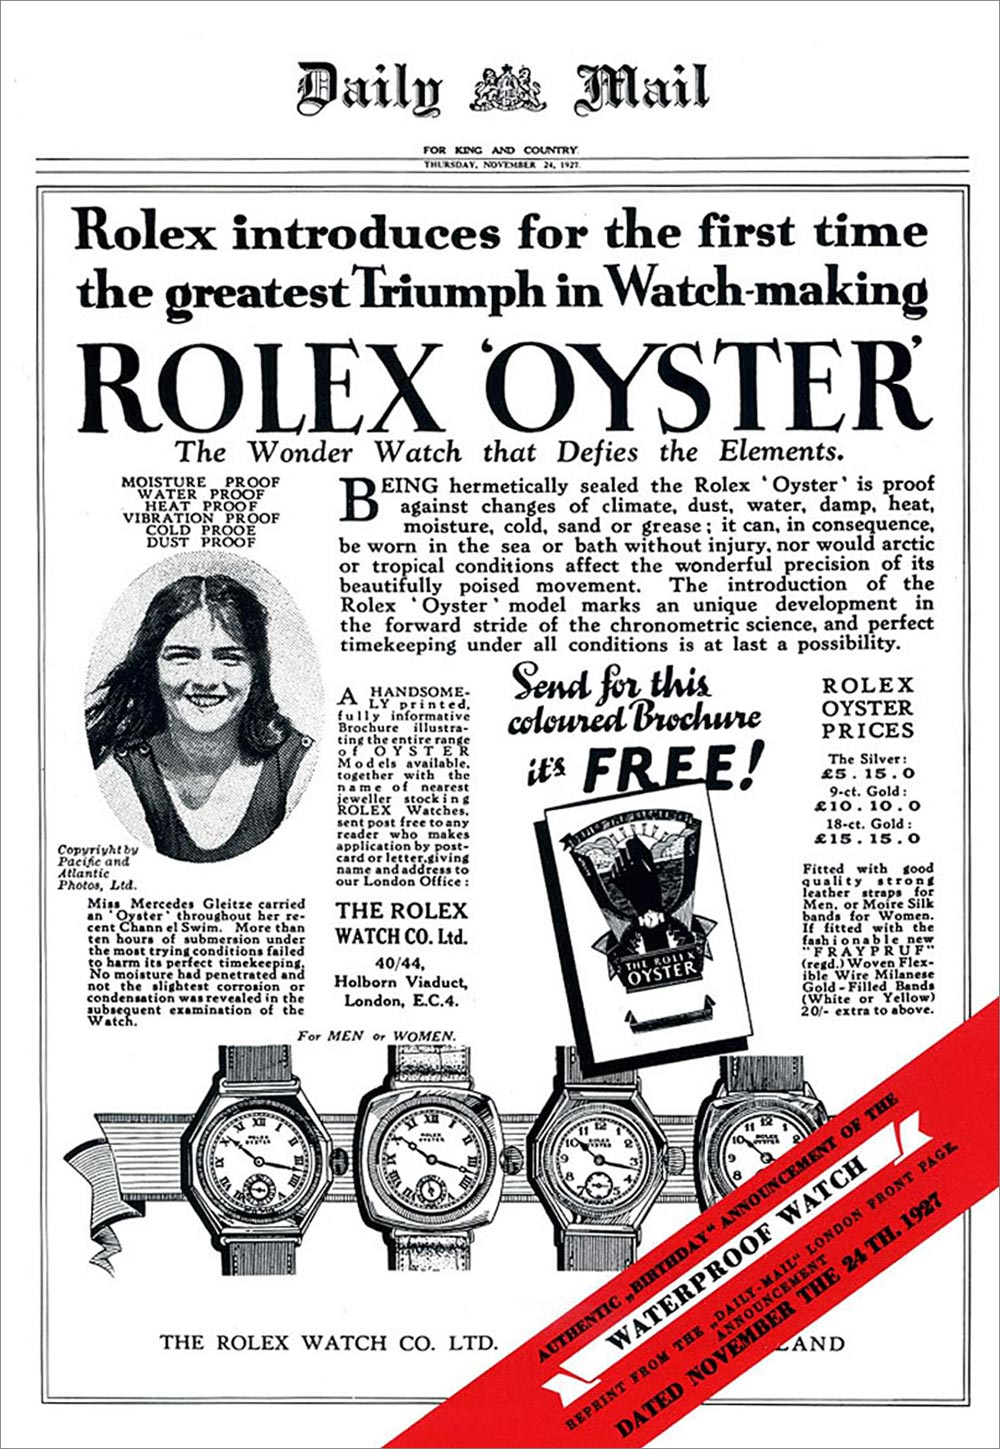 Rolex advertorial in the Daily Mail - 1927